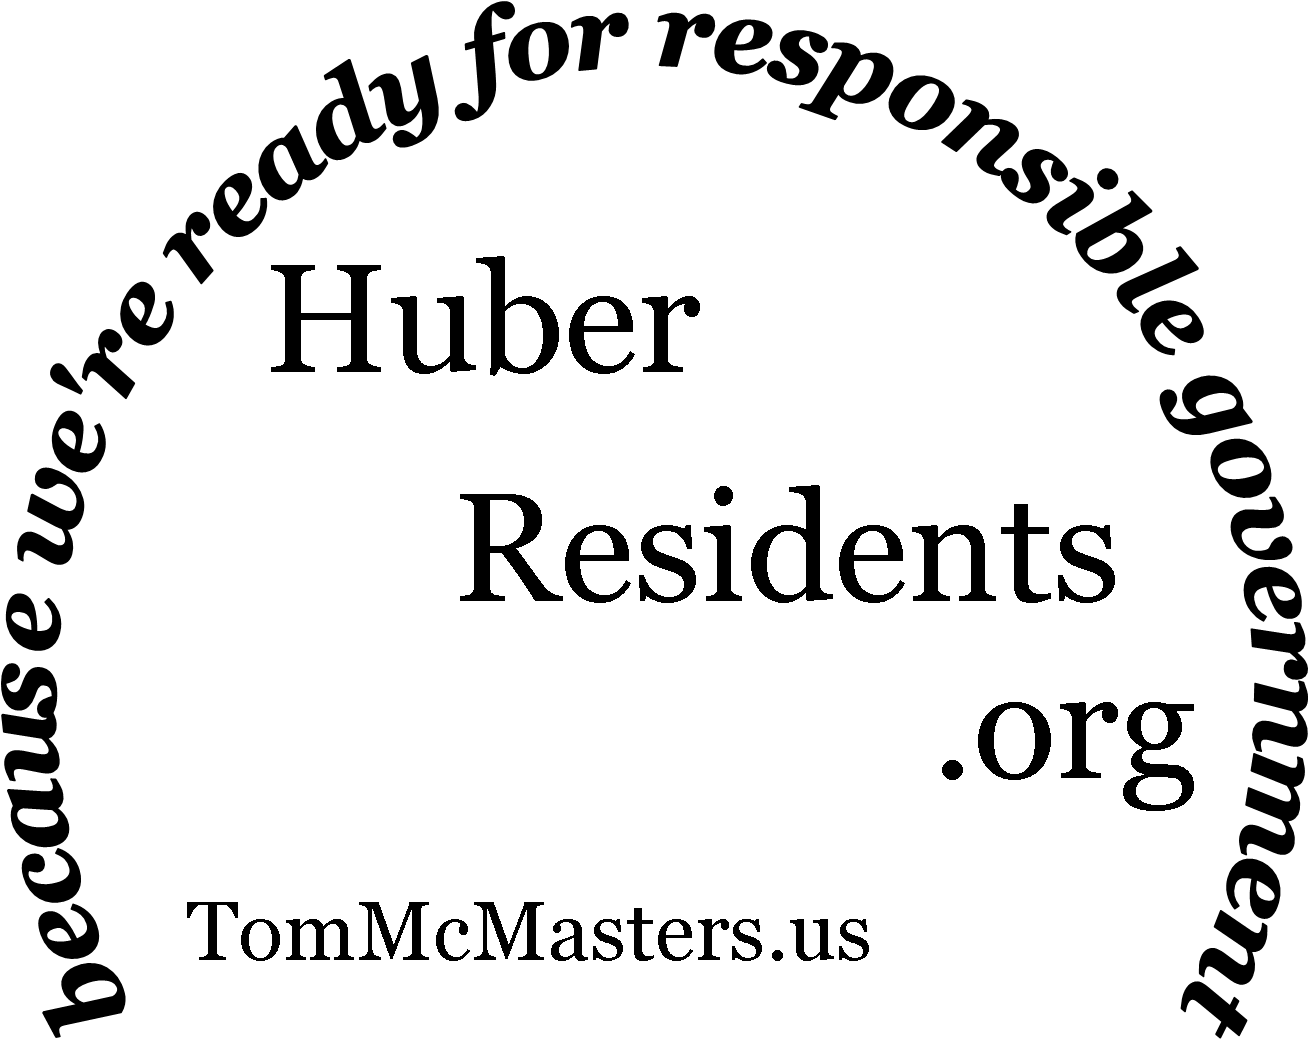 HuberResidents.org